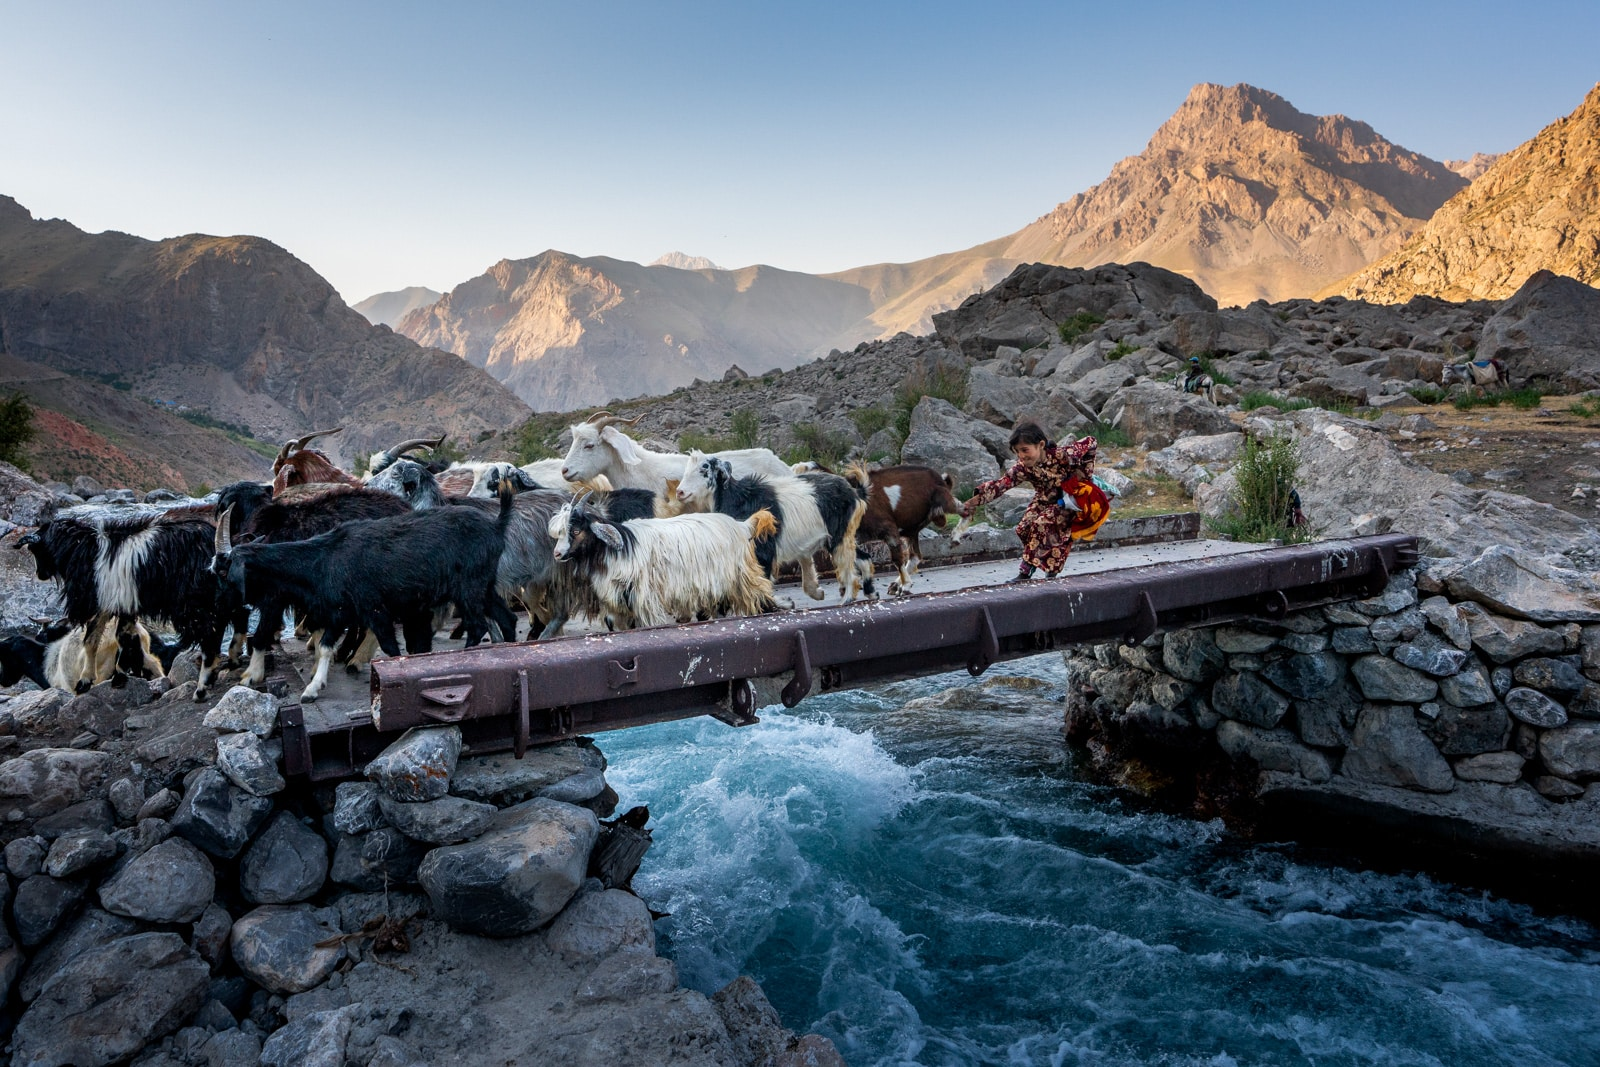 Girl catching escaping goat in Tajikistan's Fann Mountains